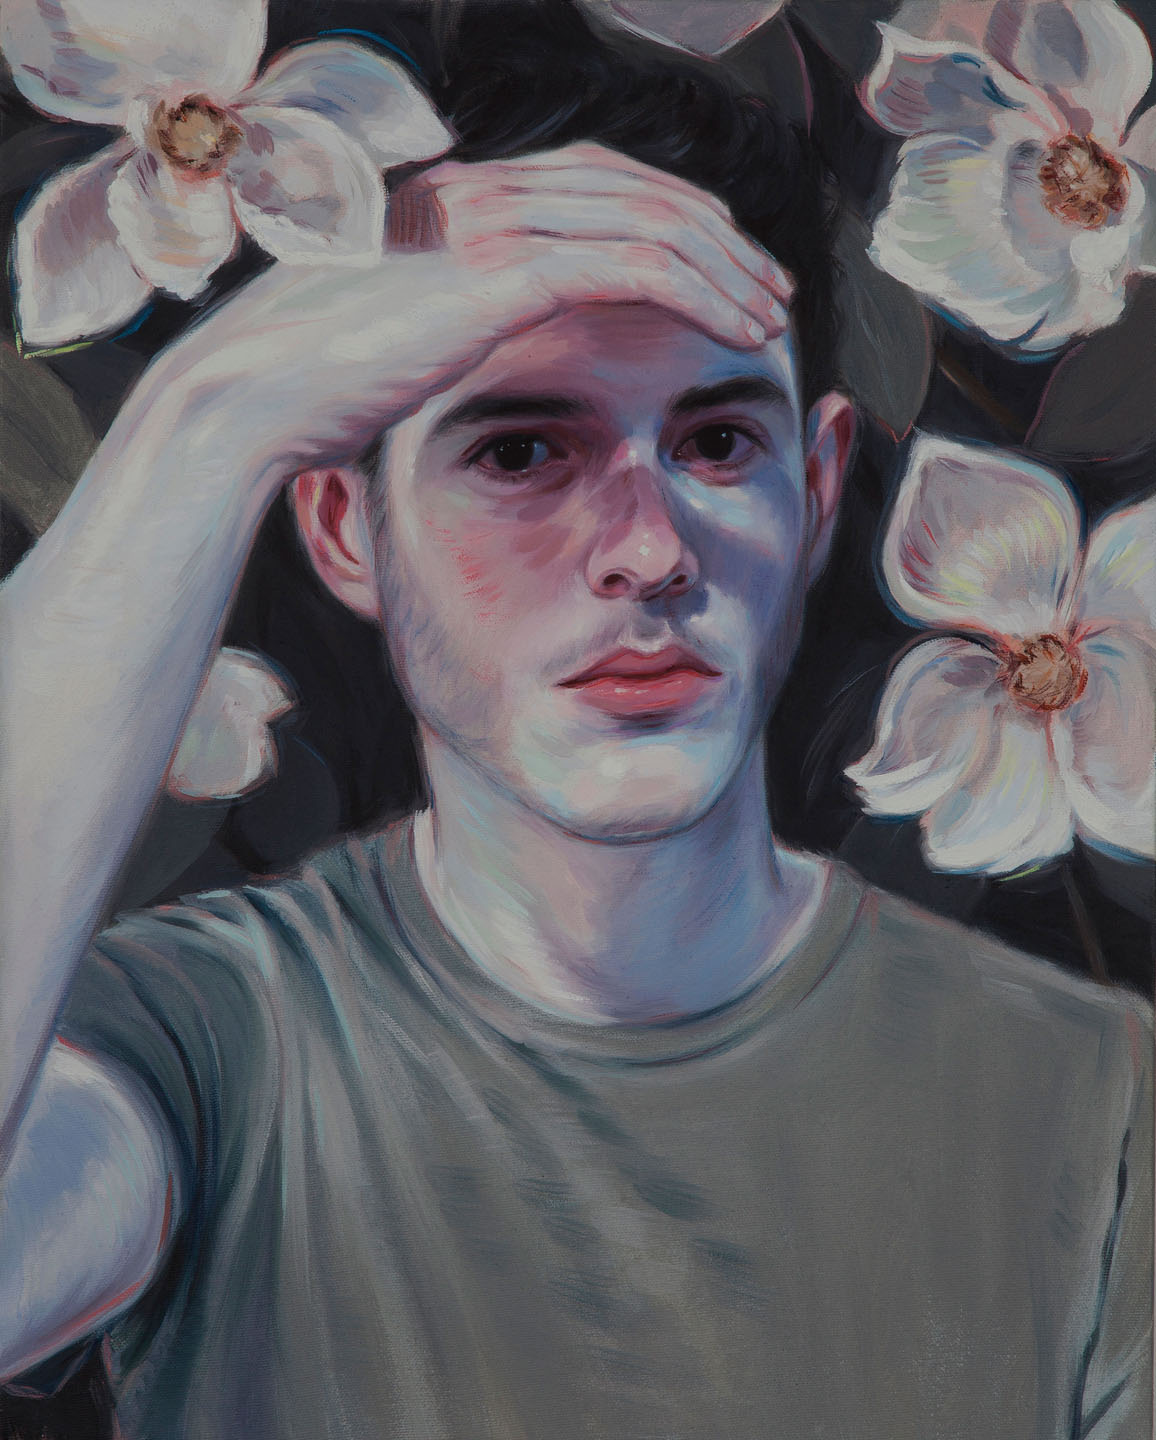 Kris Knight, His Eyes Were Black Like A Bird's, 2015, oil on canvas, 20 x 16 inches.